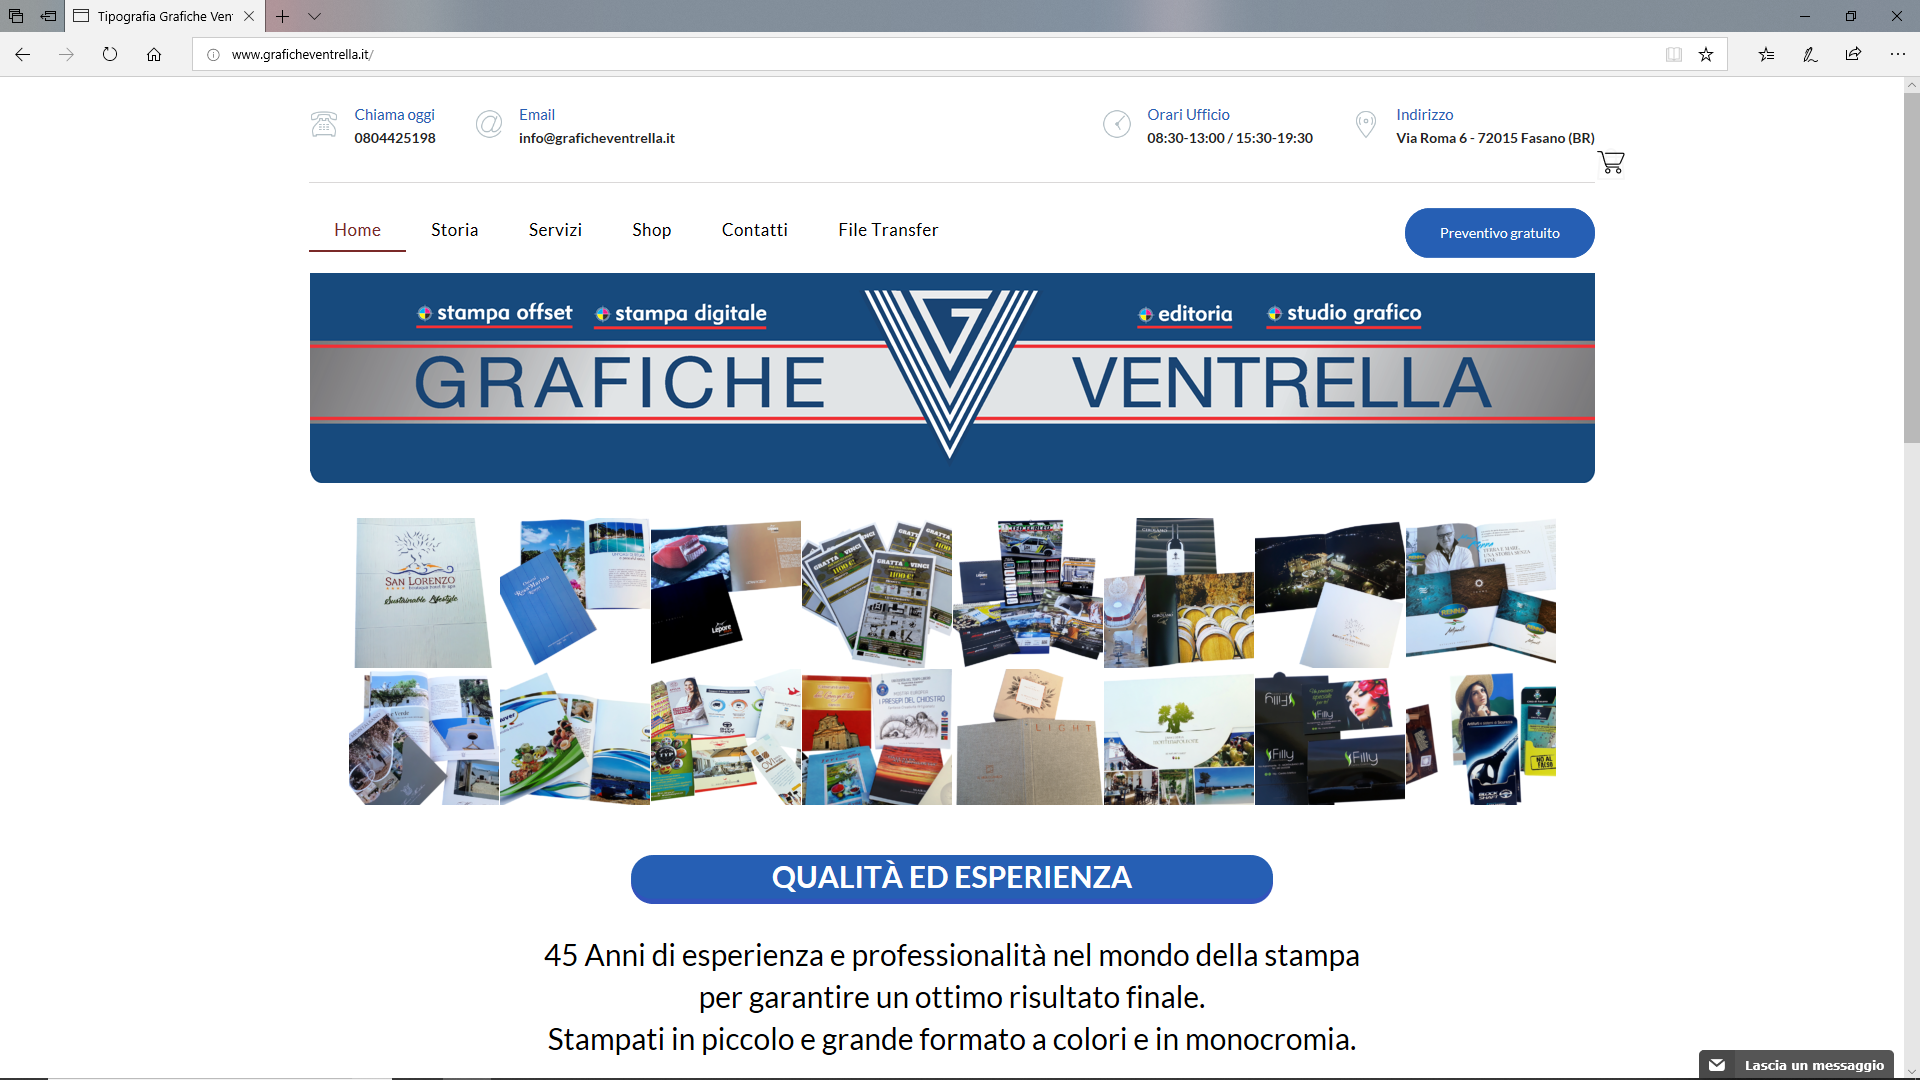 graficheventrella.it